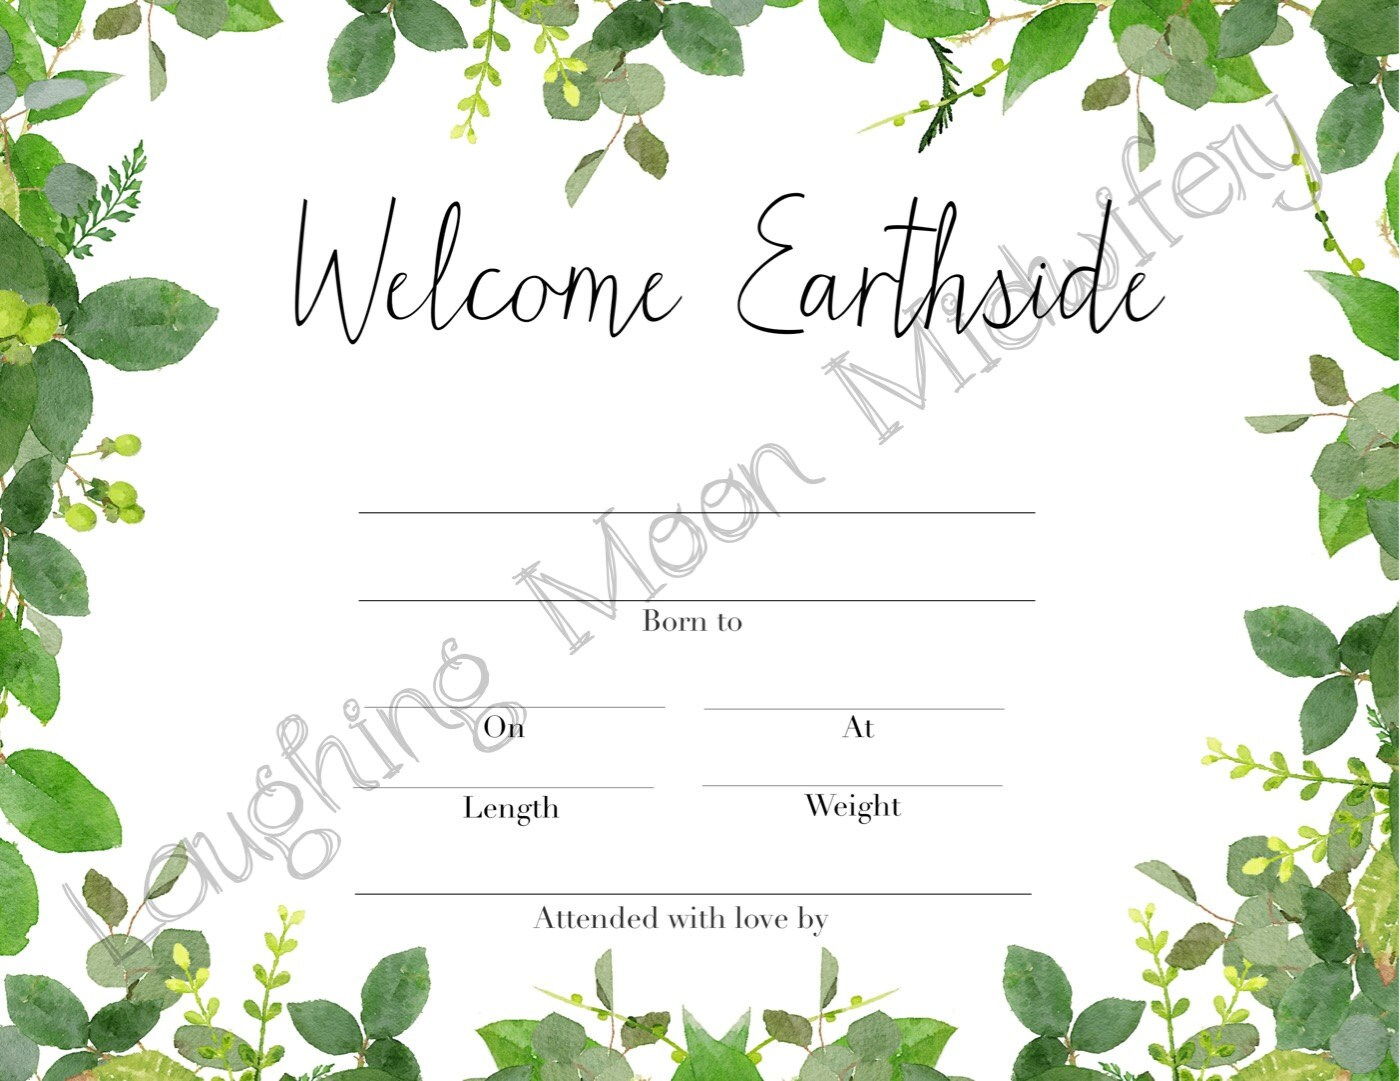 Commemorative birth certificate welcome earthside floral zoom aiddatafo Choice Image